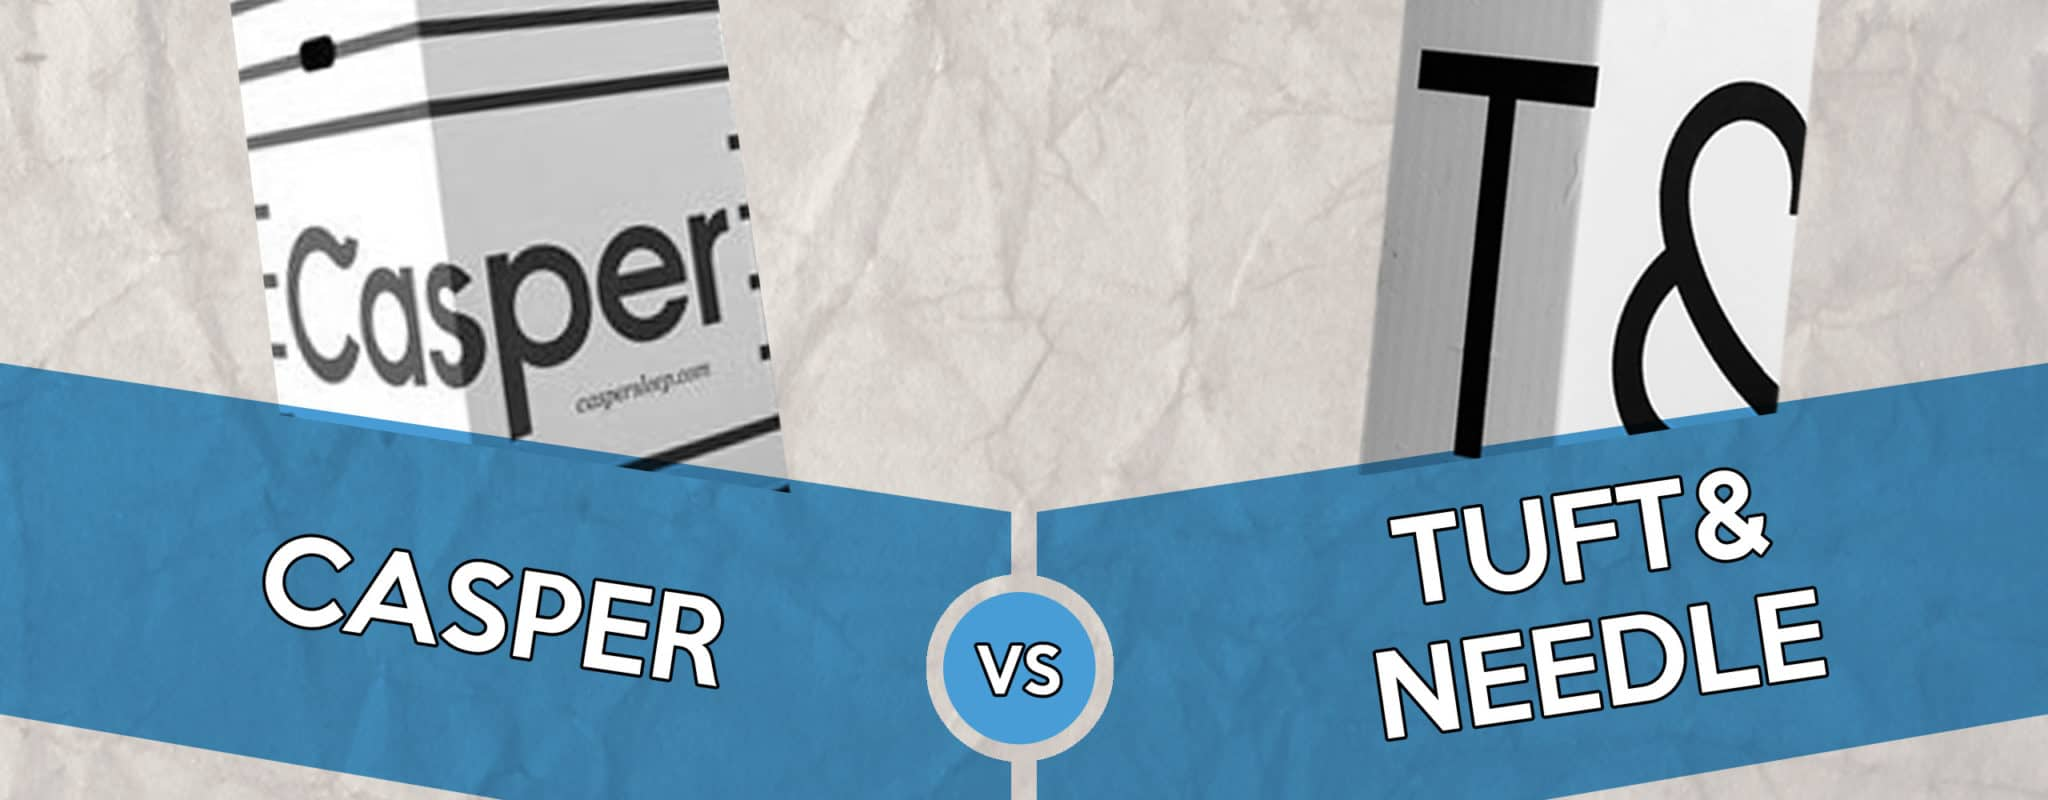 Tuft and needle vs casper mattress review sleepopolis for Brooklyn bedding vs tuft and needle